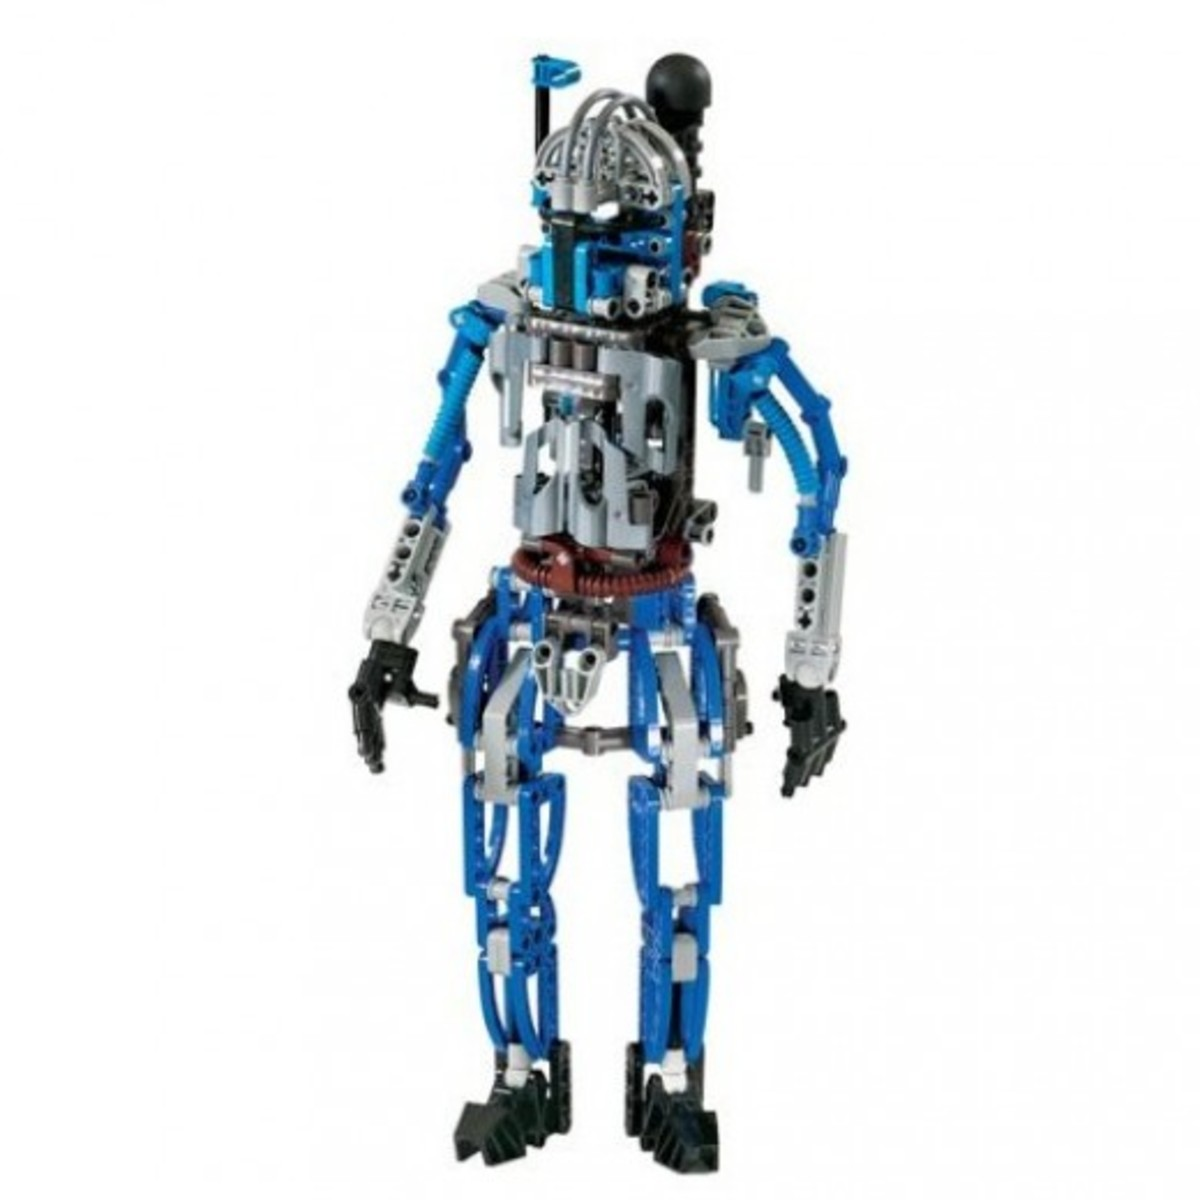 Lego Star Wars Jengo Fett 8011 Assembled